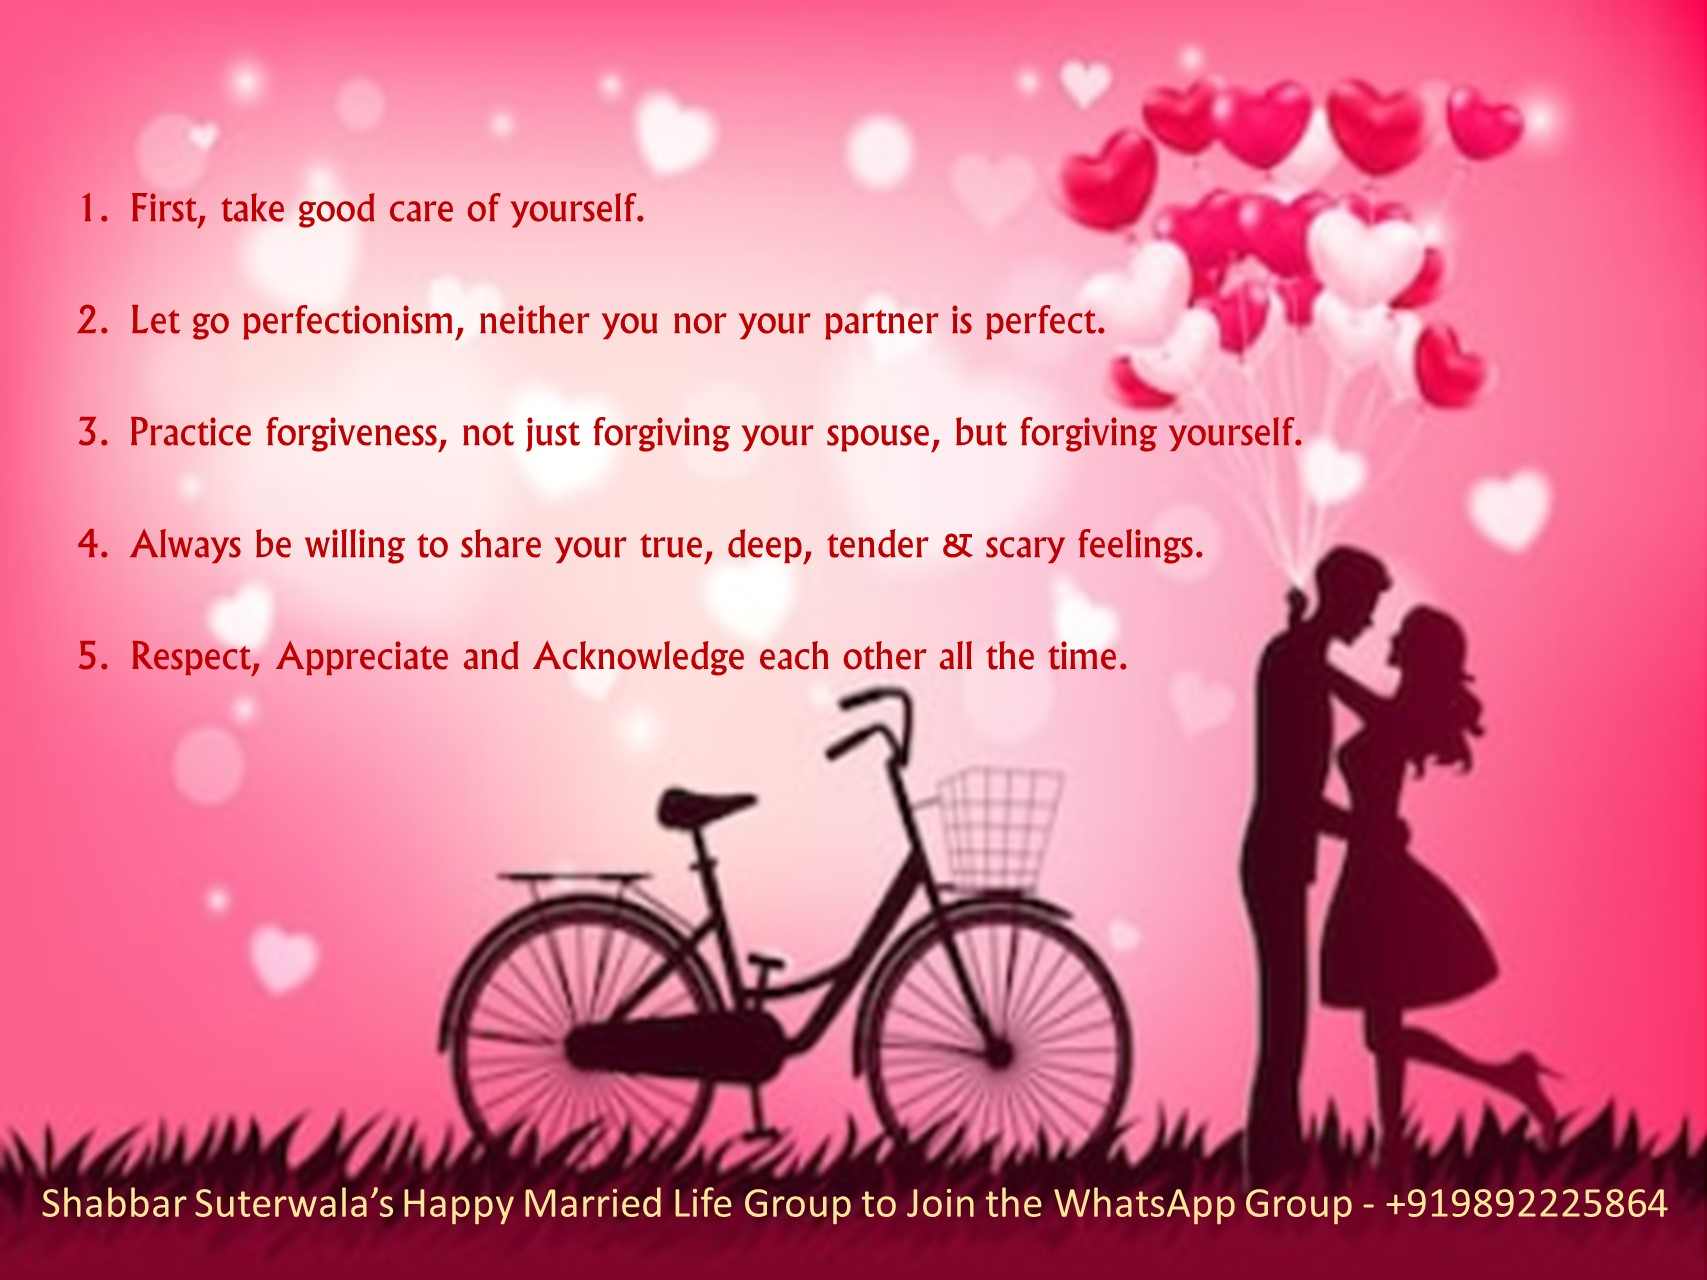 5 Tips for Happy Married Life